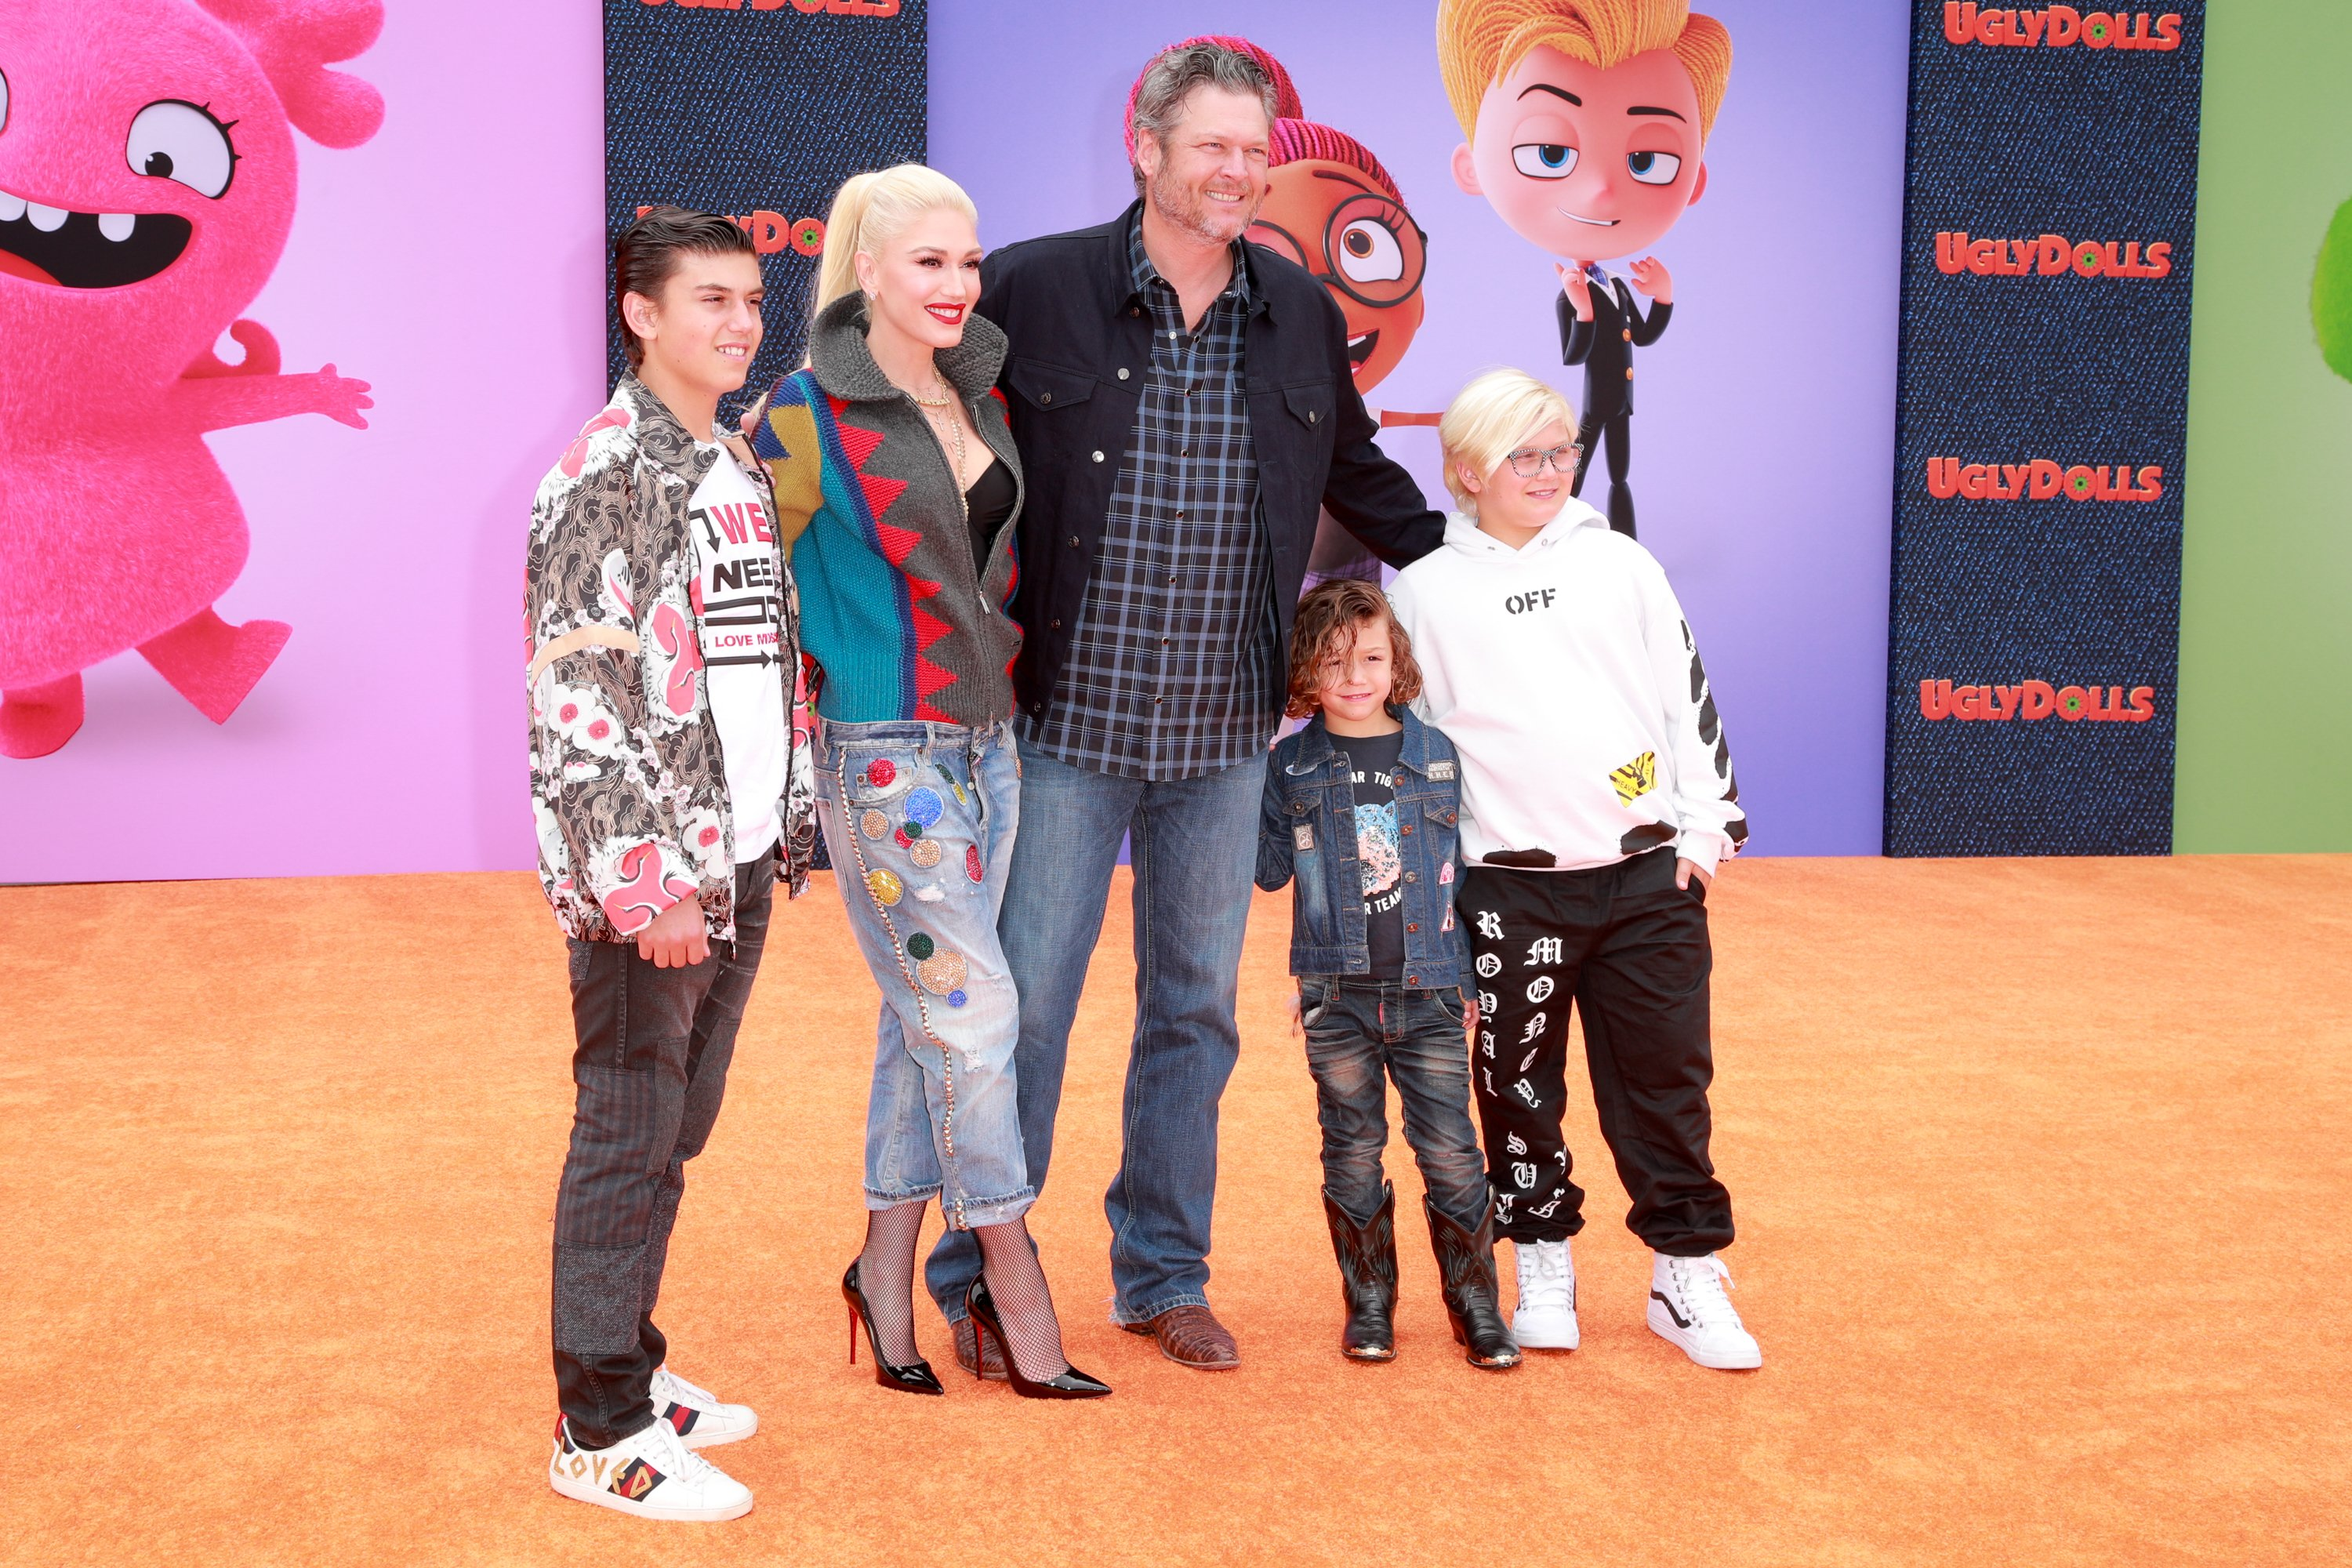 """Gwen Stefani and Shelton with her 3 boys at STX Films World Premiere of """"UglyDolls"""" at Regal Cinemas L.A n 2019. 